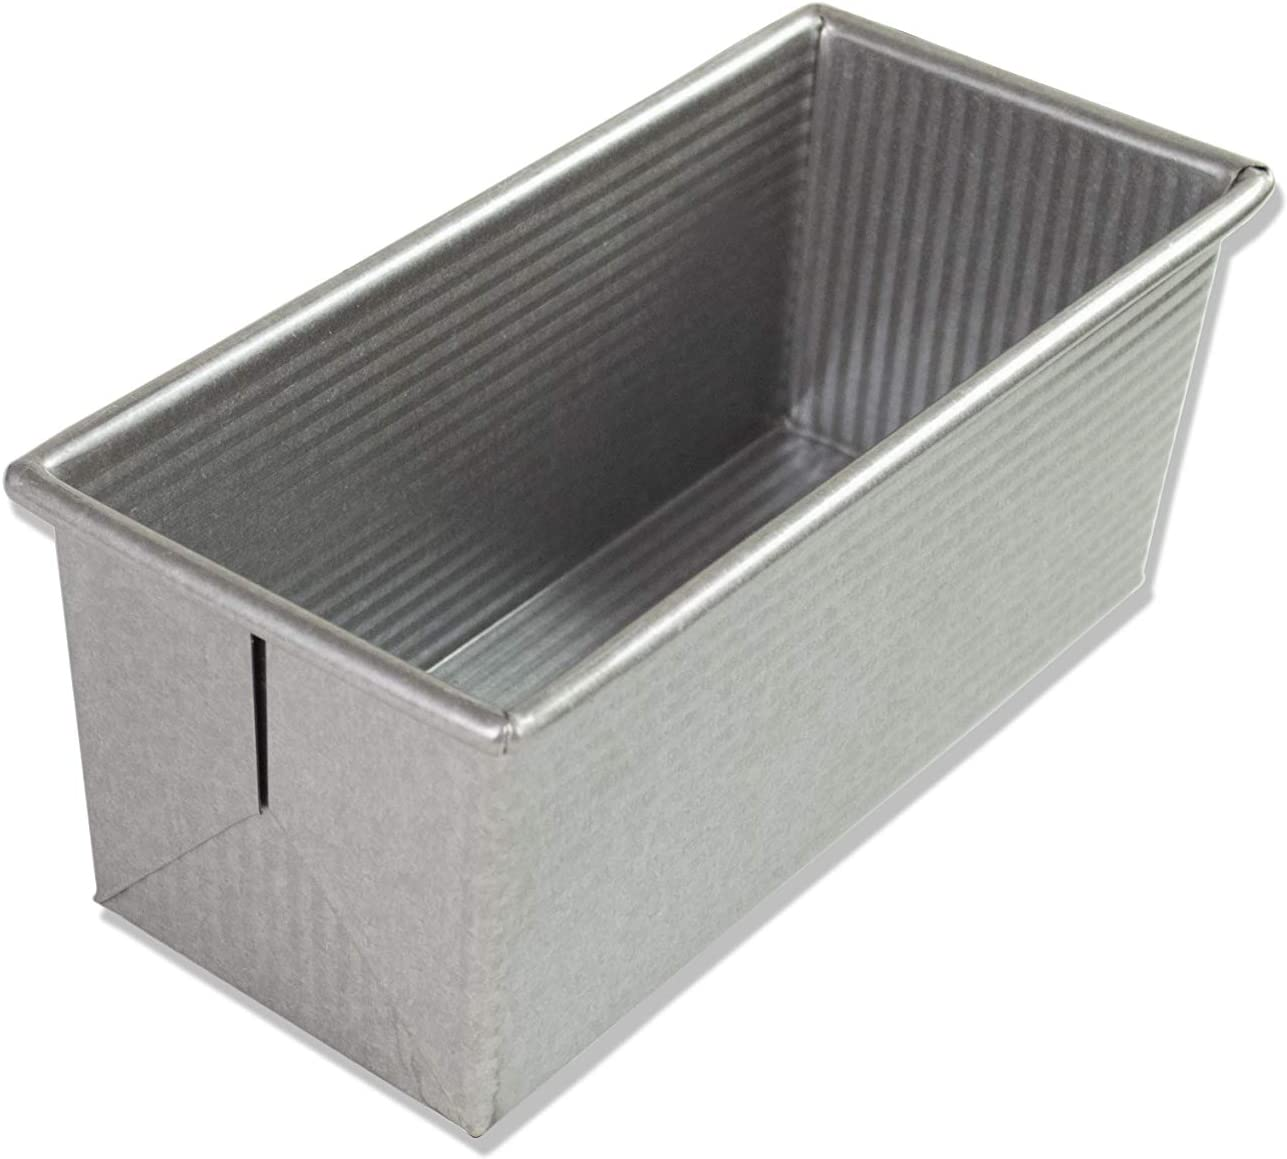 Charlotte Mall USA Pan Bakeware Loaf Now free shipping Pullman Small